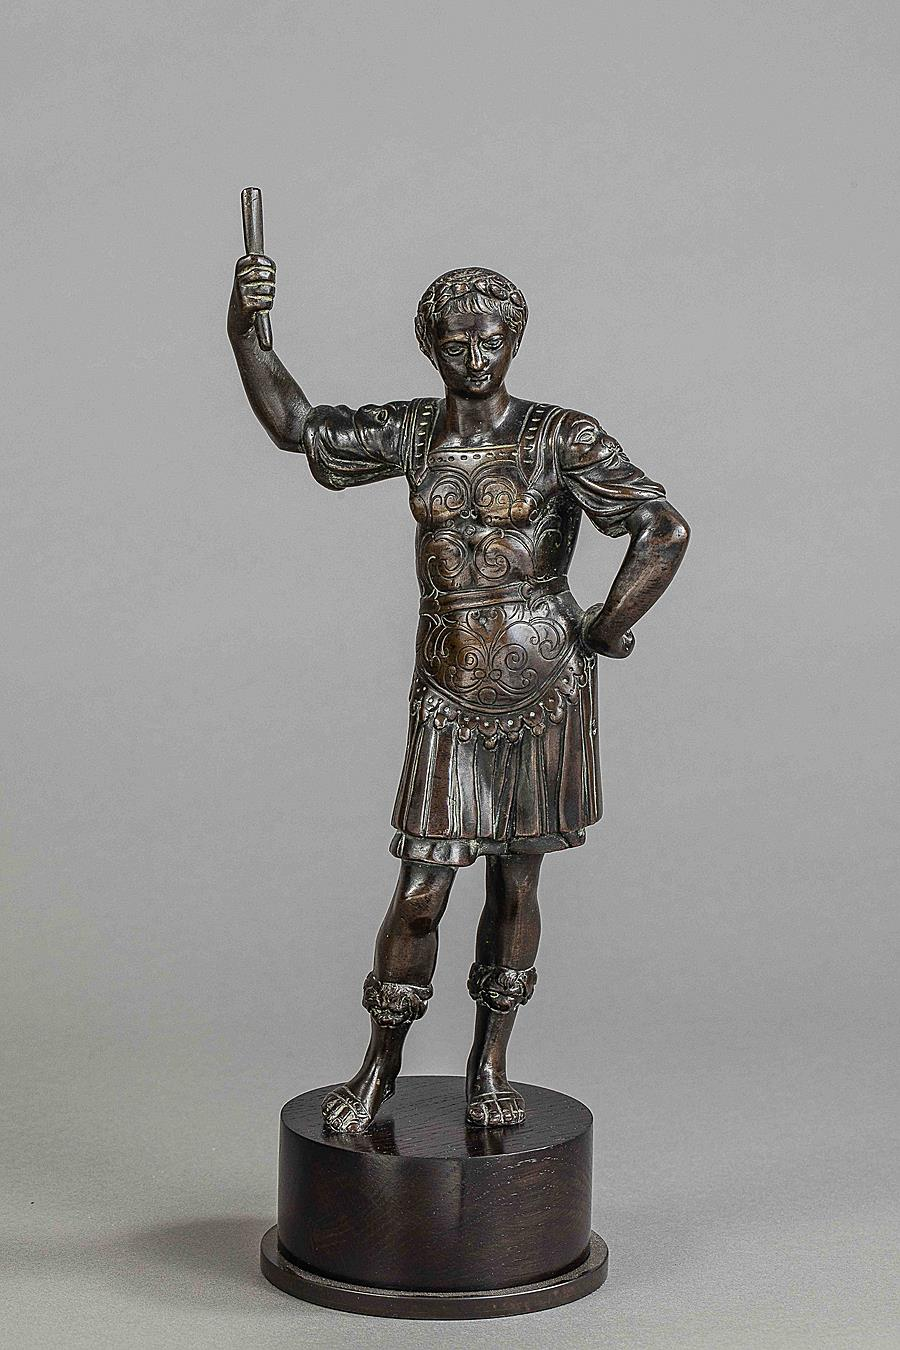 ROMAN EMPEROR ROME END OF THE 16 TH CENTURY